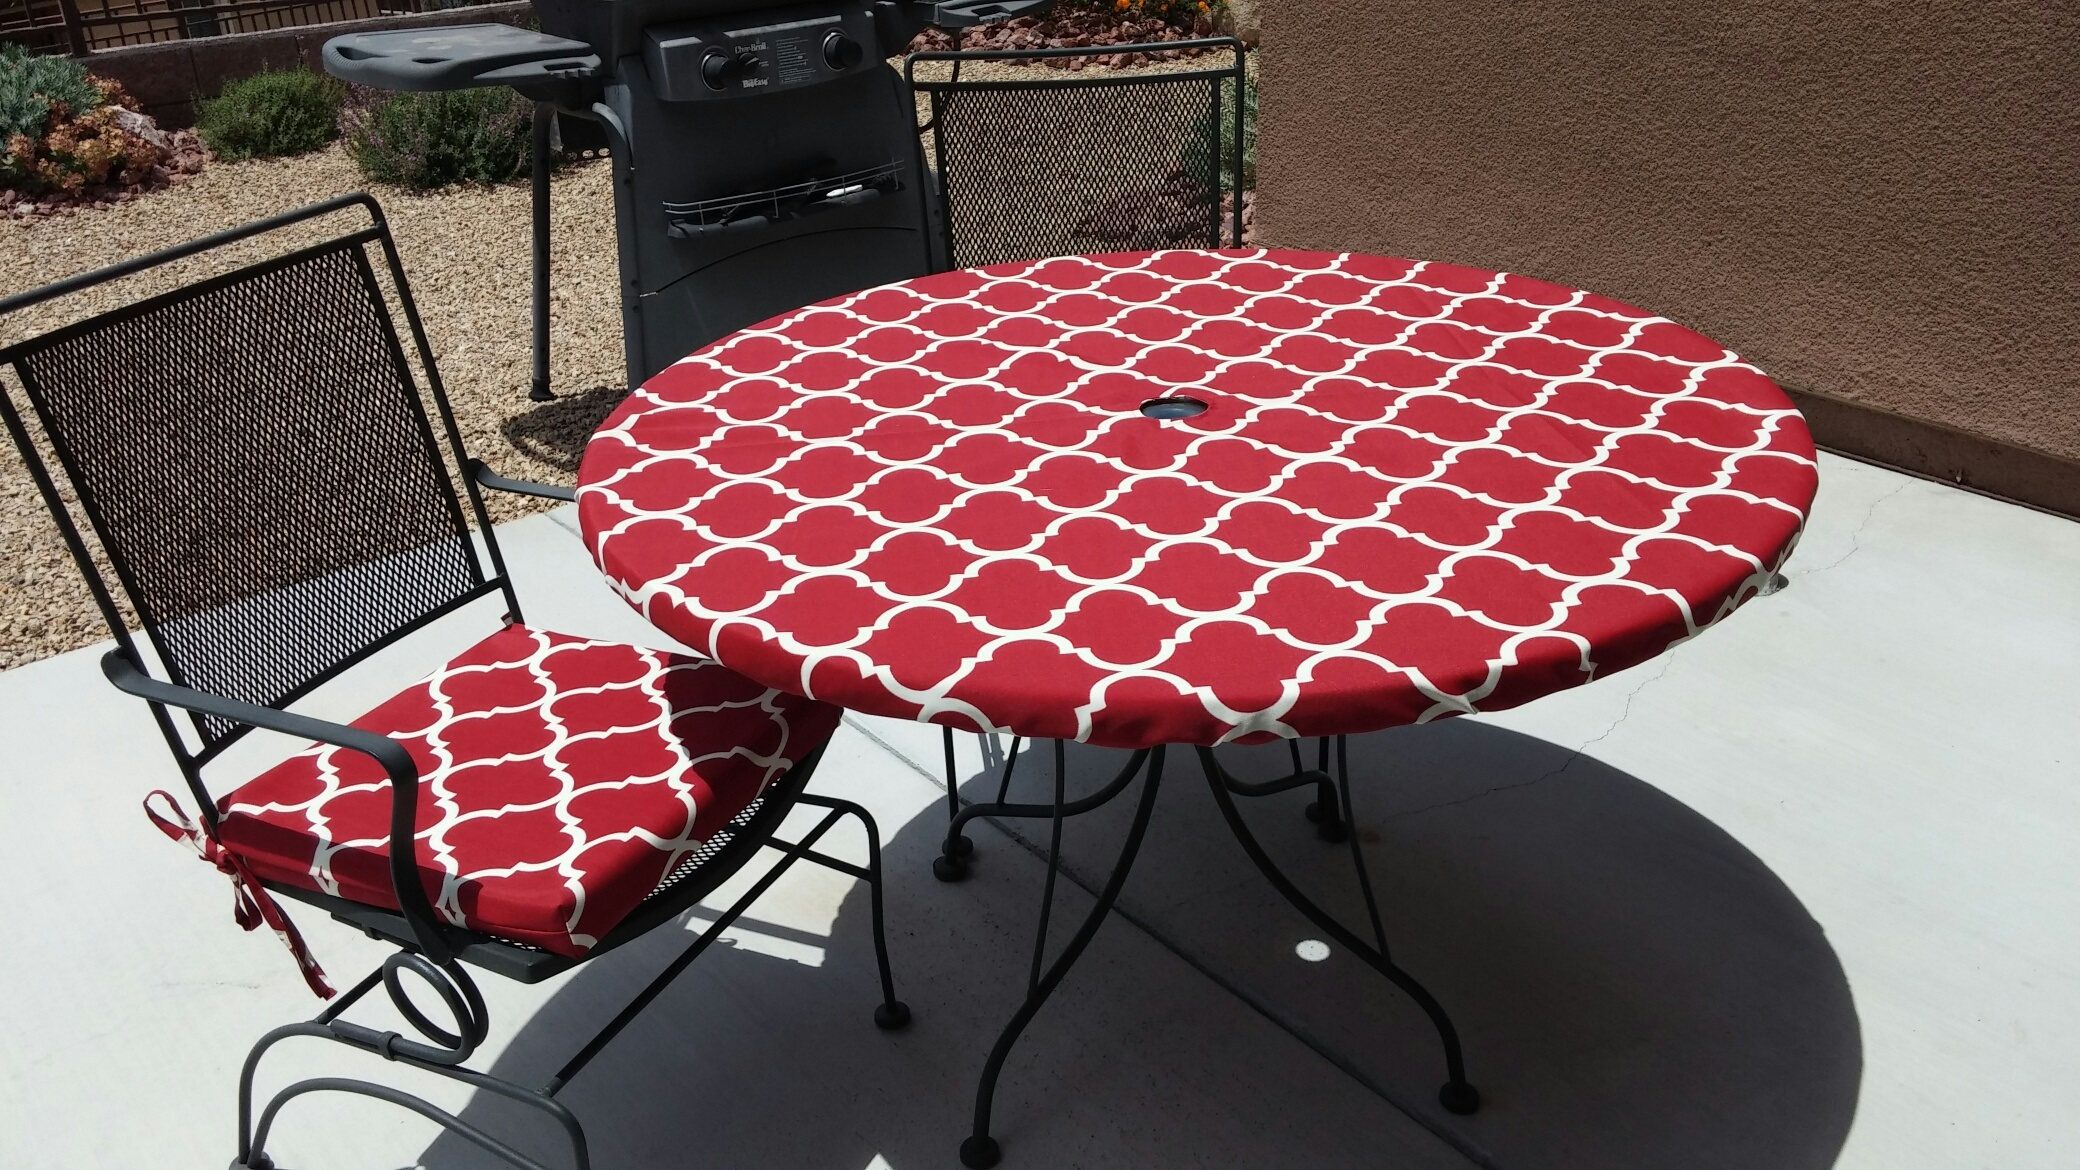 Round Fitted Tablecloth For Indoor Or Outdoor Dining With In 2020